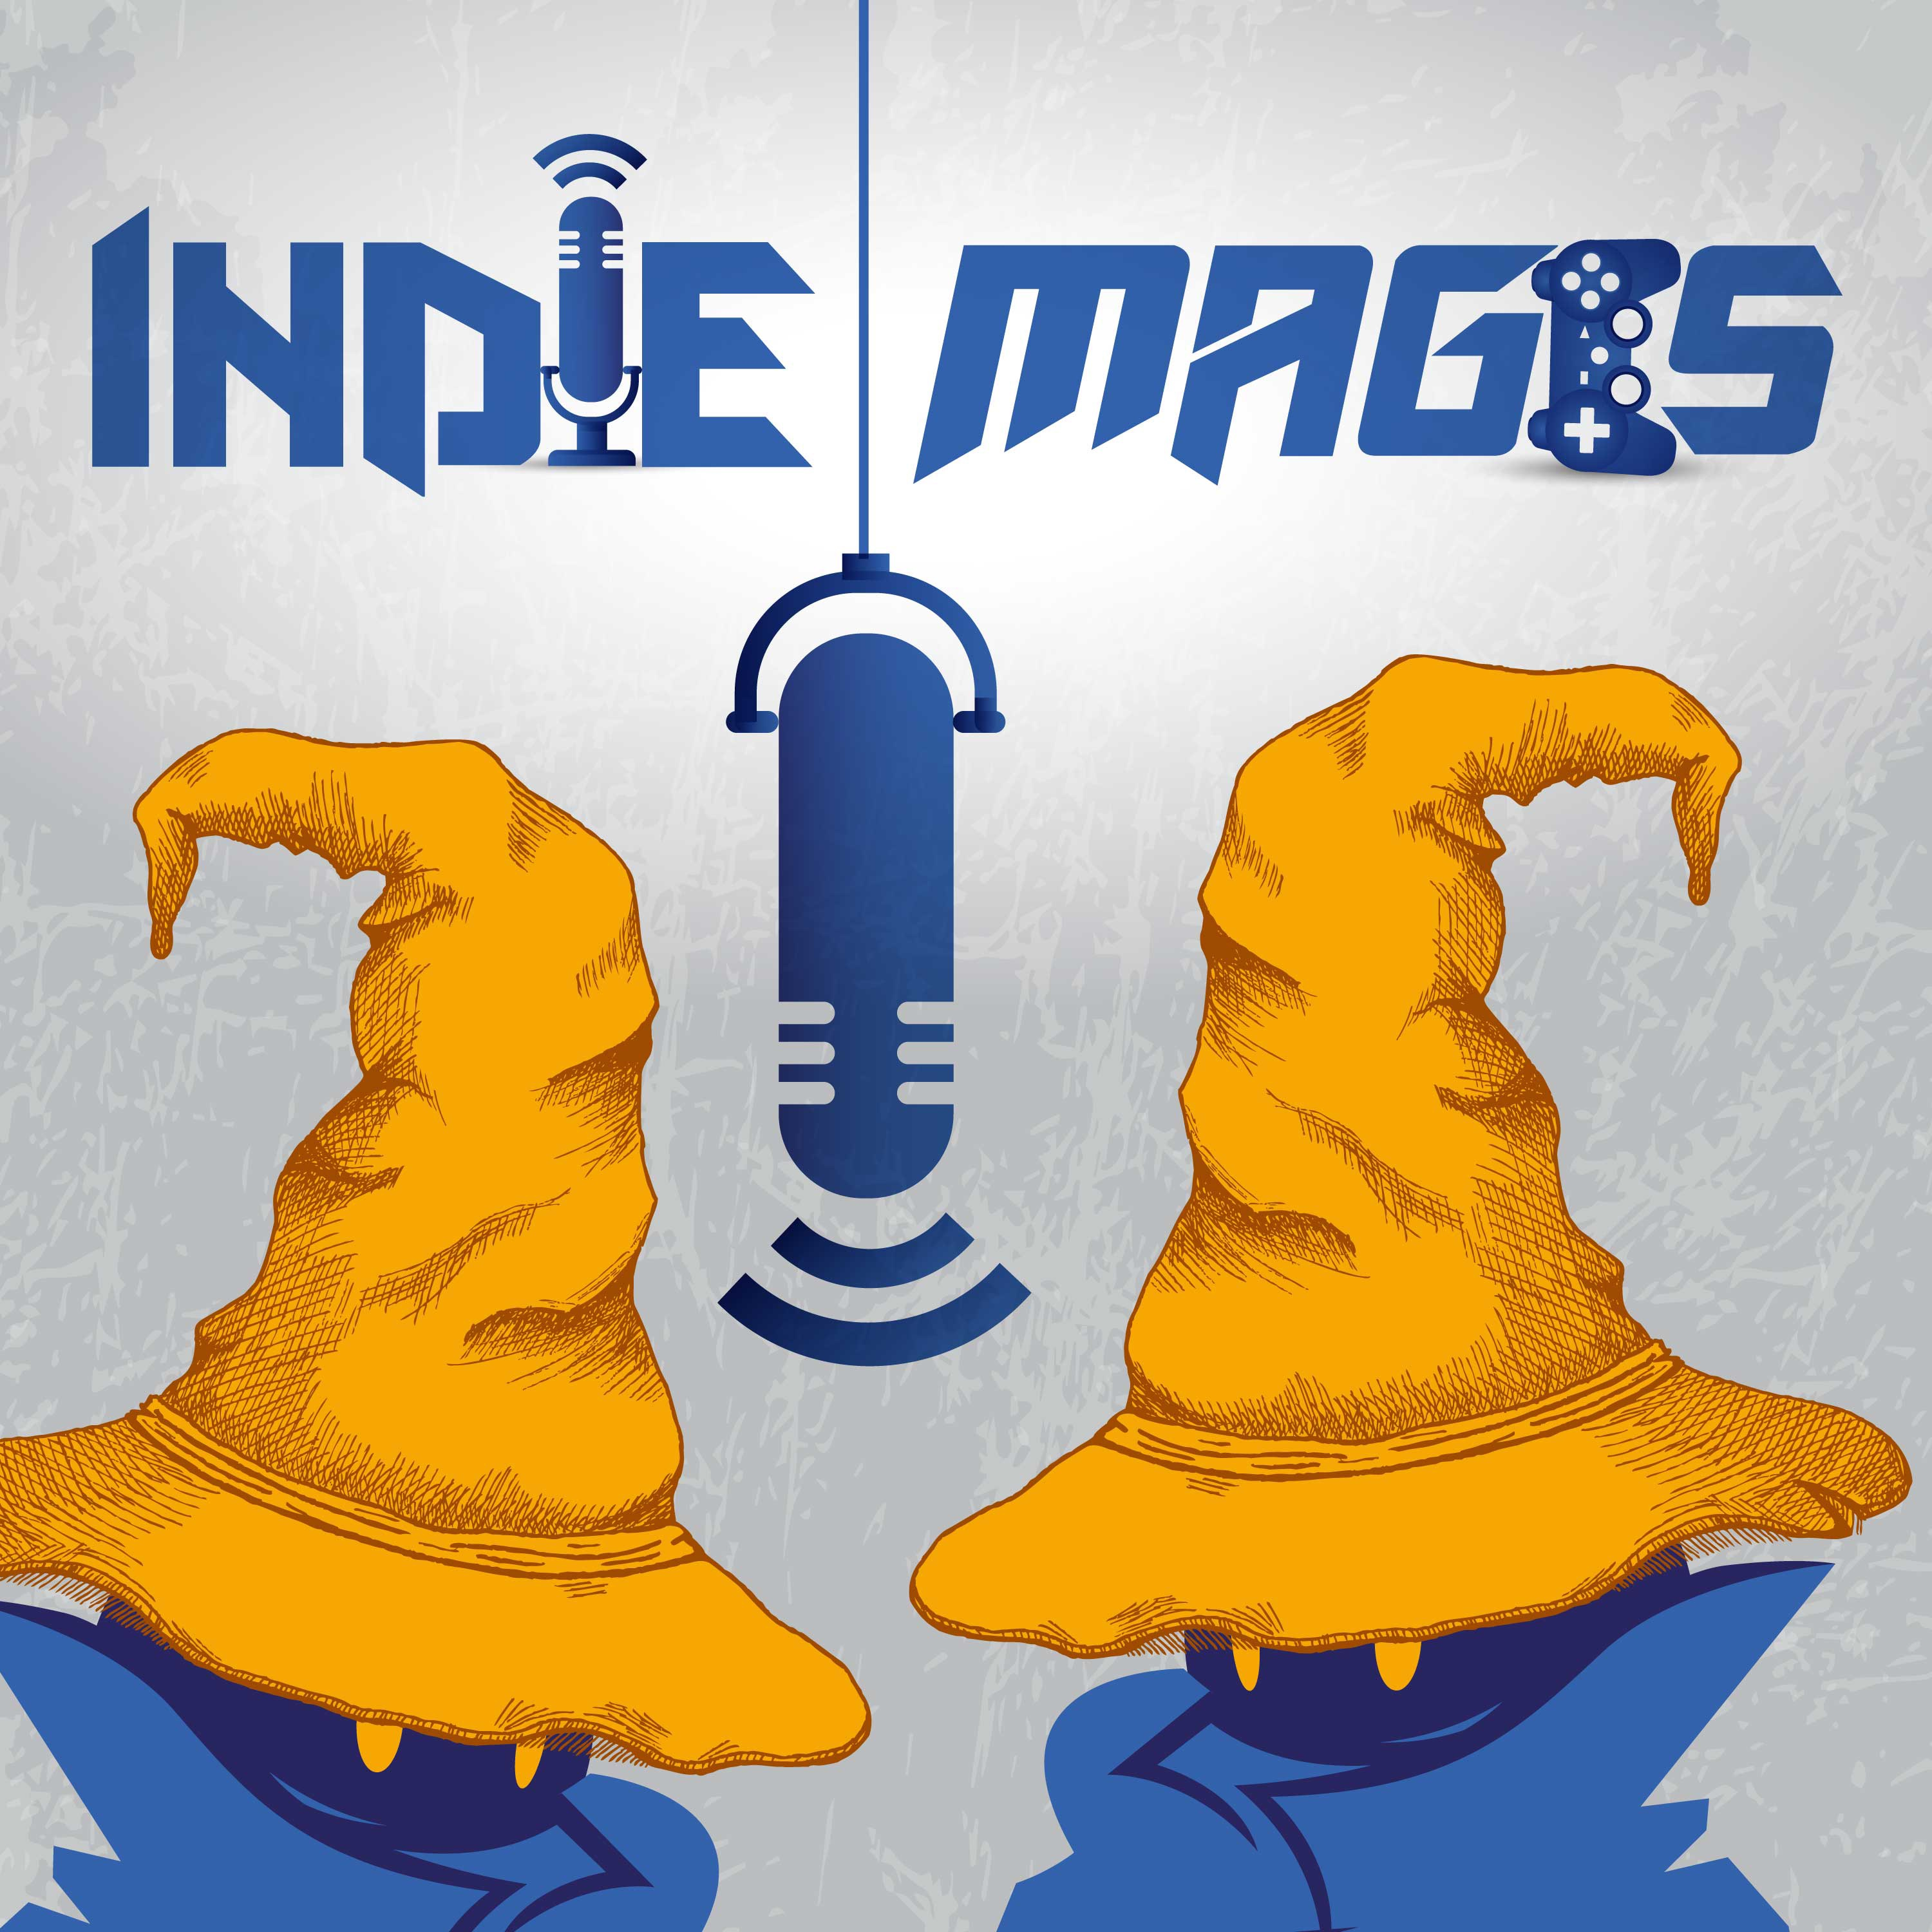 Indie Mages: An Indie Video Game Podcast